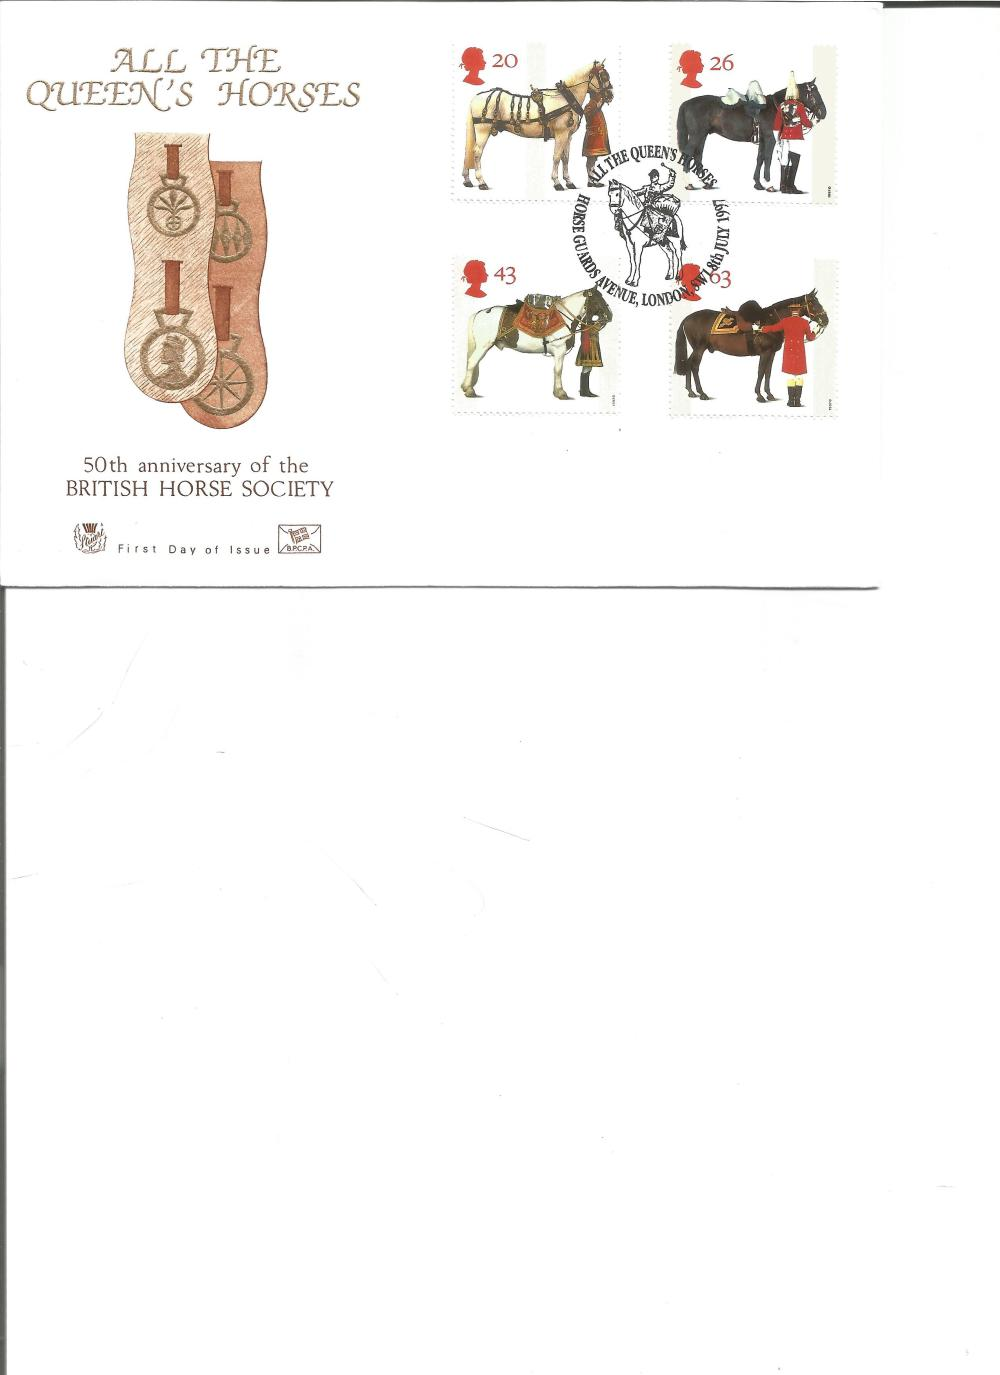 FDC All the Queen Horses 50th Anniversary of the British Horse Society c/w set of four commemorative